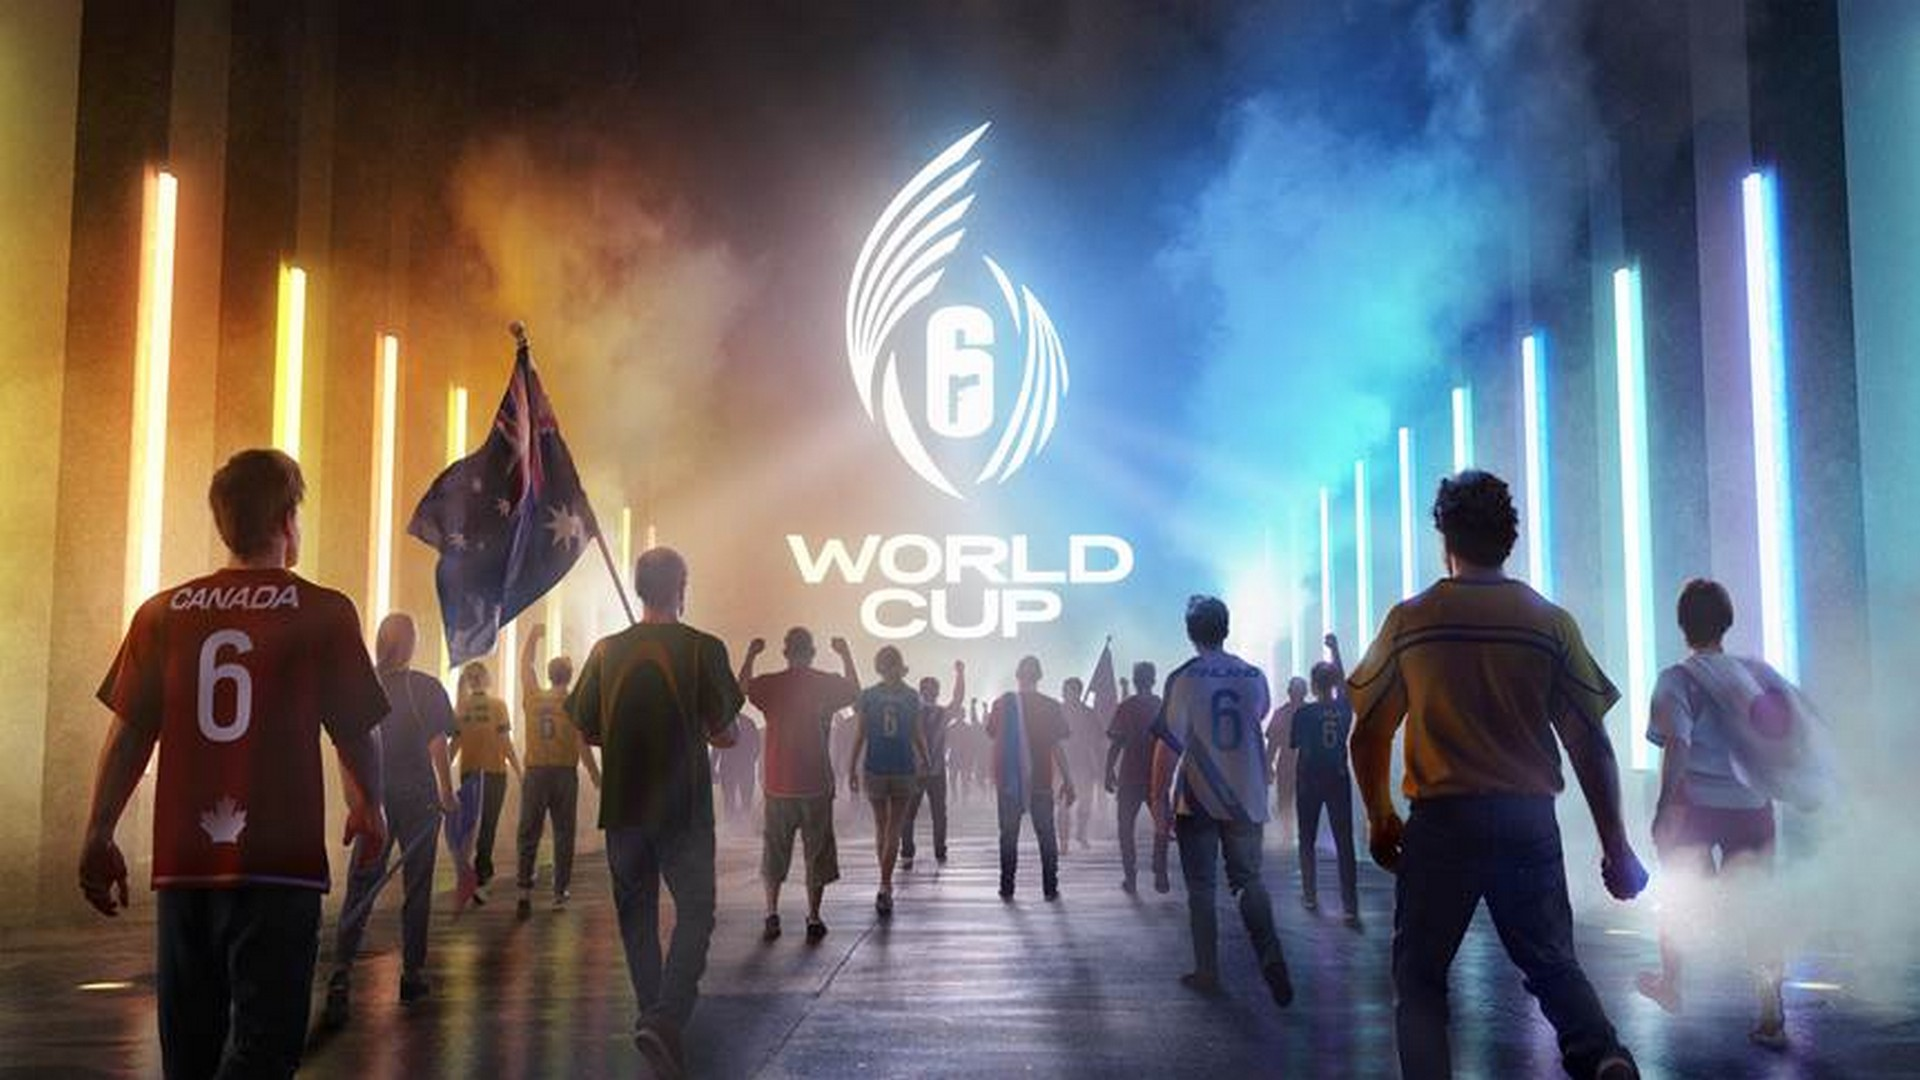 Ubisoft Announces The First World Cup For Rainbow Six Siege, With Sports Ambassador Tony Parker